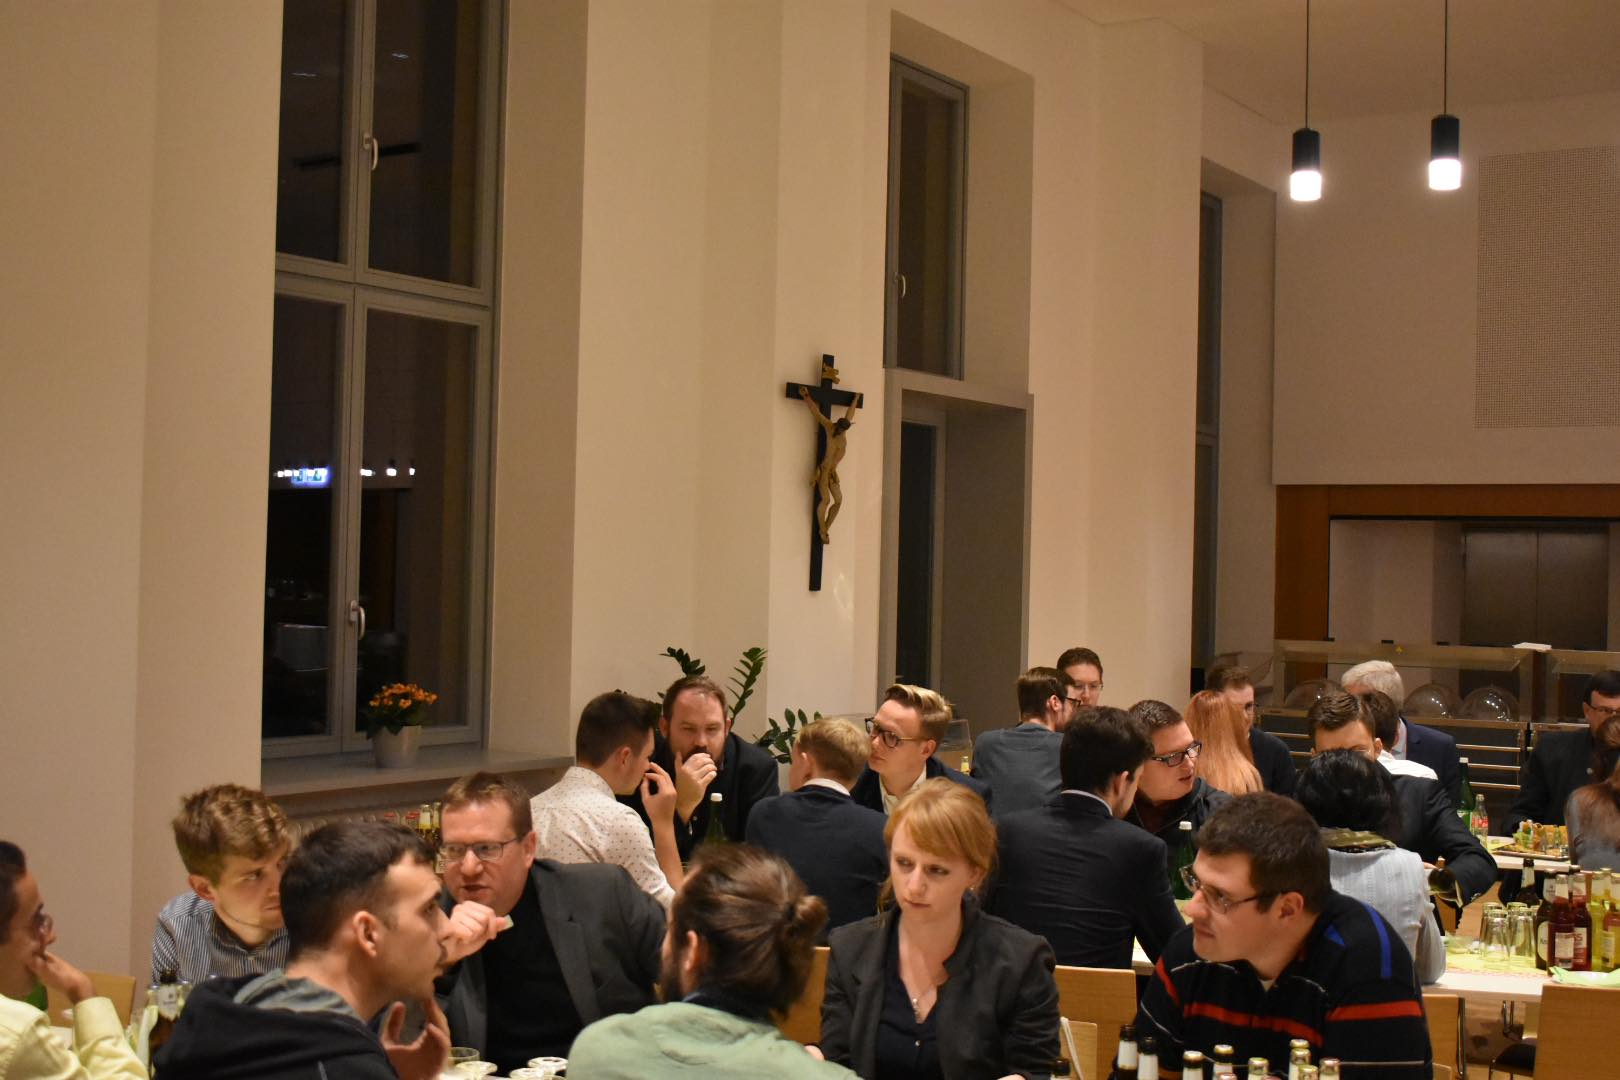 Guests' evening in the seminary: Dinner with conversations